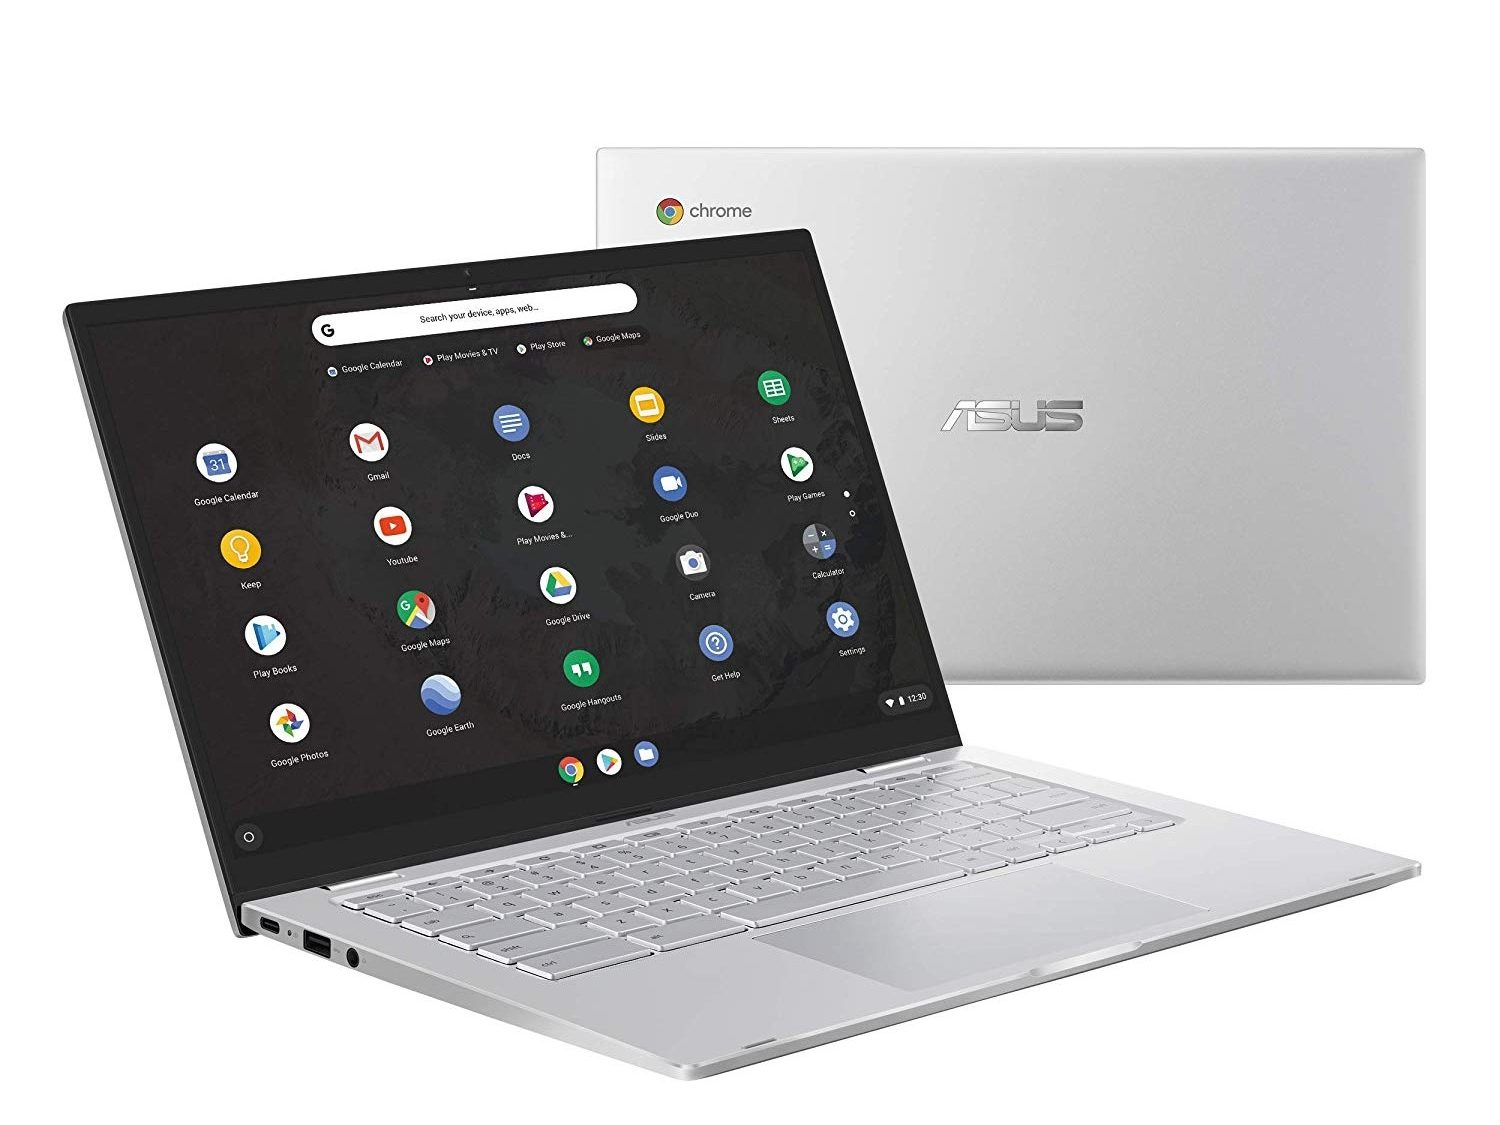 Deal Alert: Grab the powerful ASUS Chromebook C425 and save $120